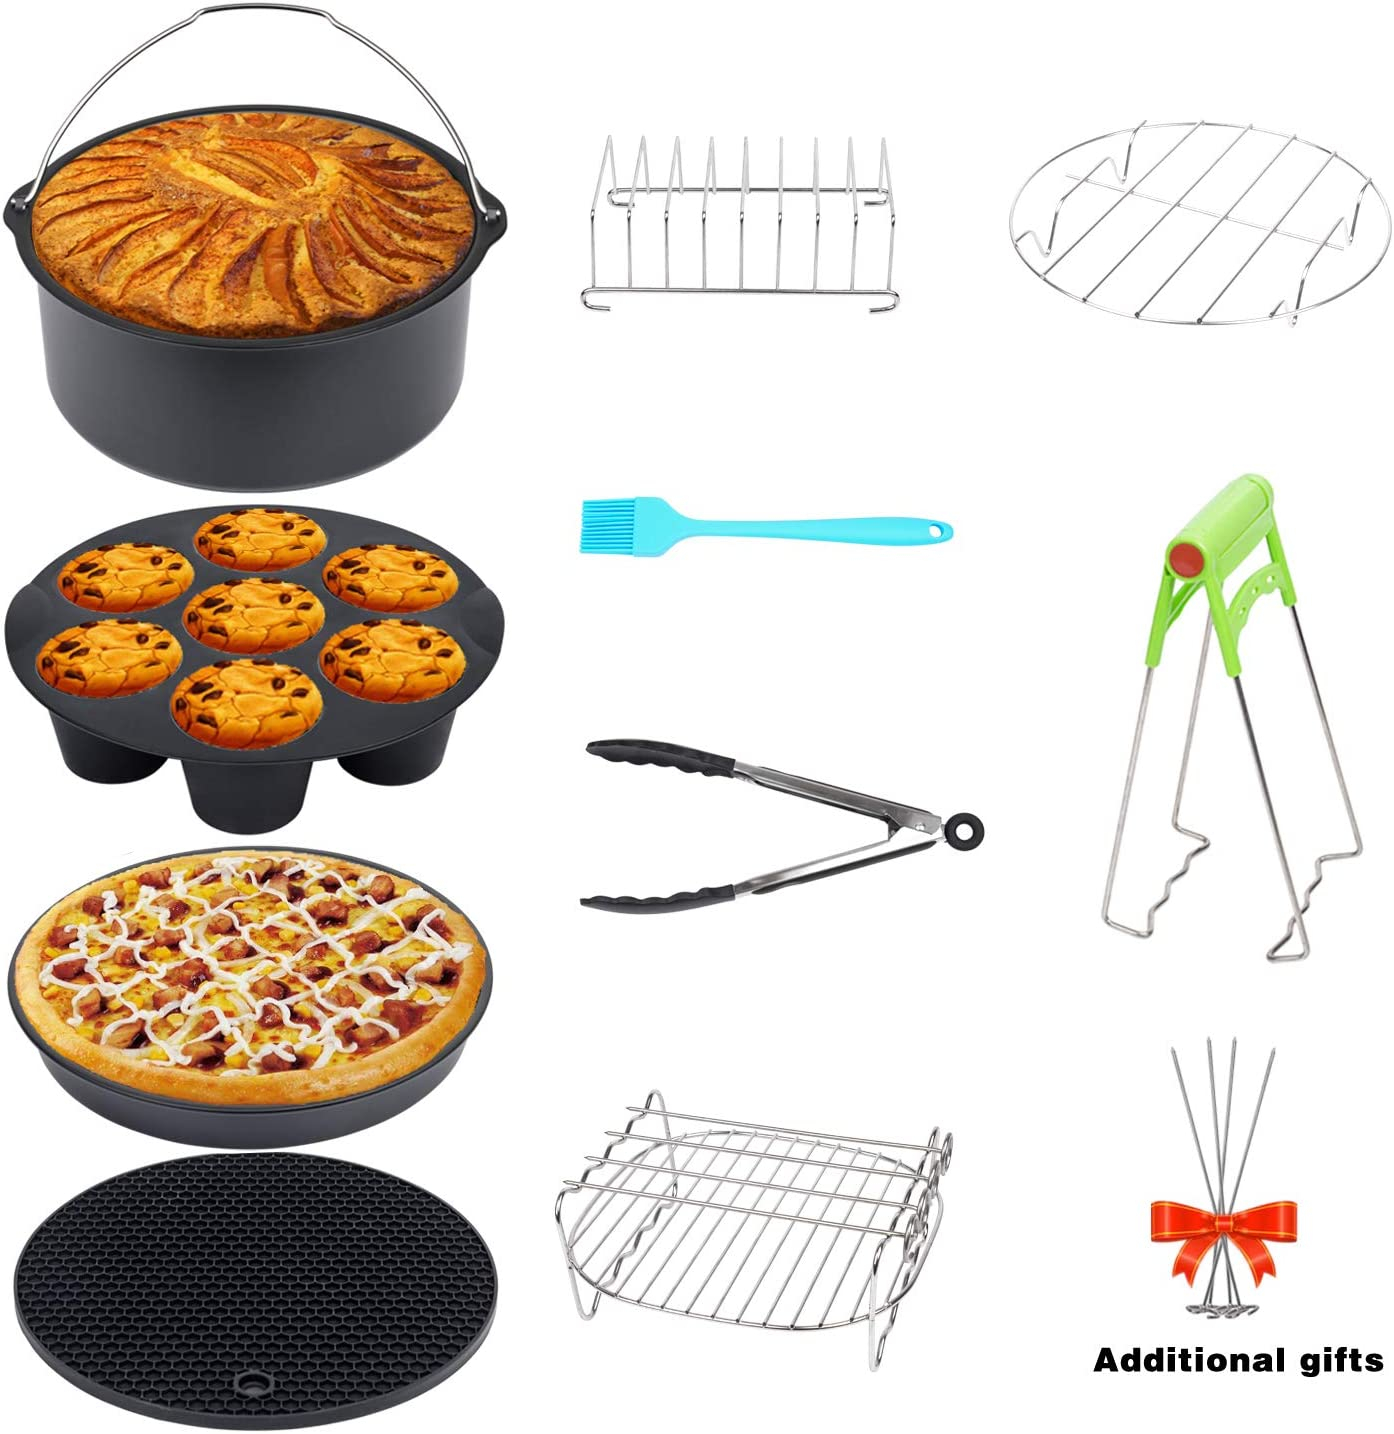 Golden XL Air Fryer Accessories 8 Inch Set of 10 Pcs for Gowise Phillips Cozyna Airfryer XL 3.8QT-5.8QT